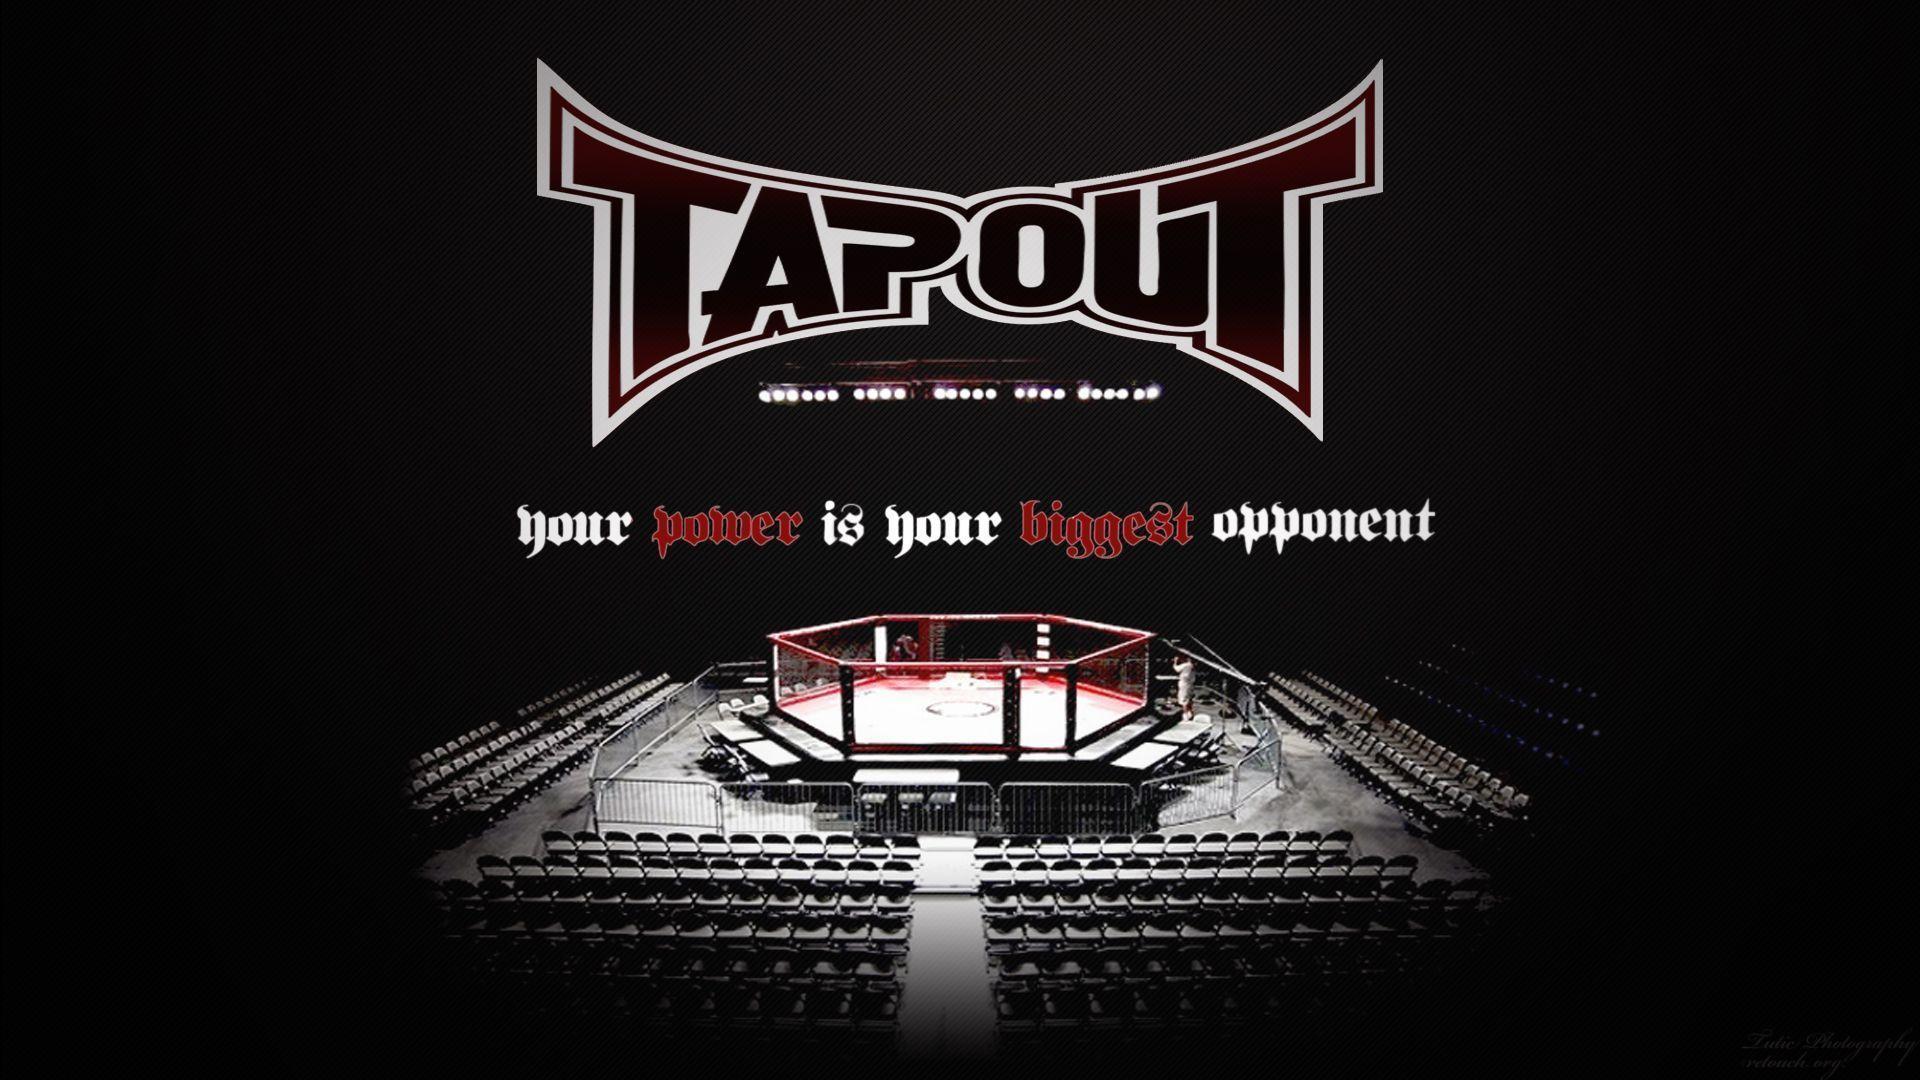 tapout logo red mma - photo #25